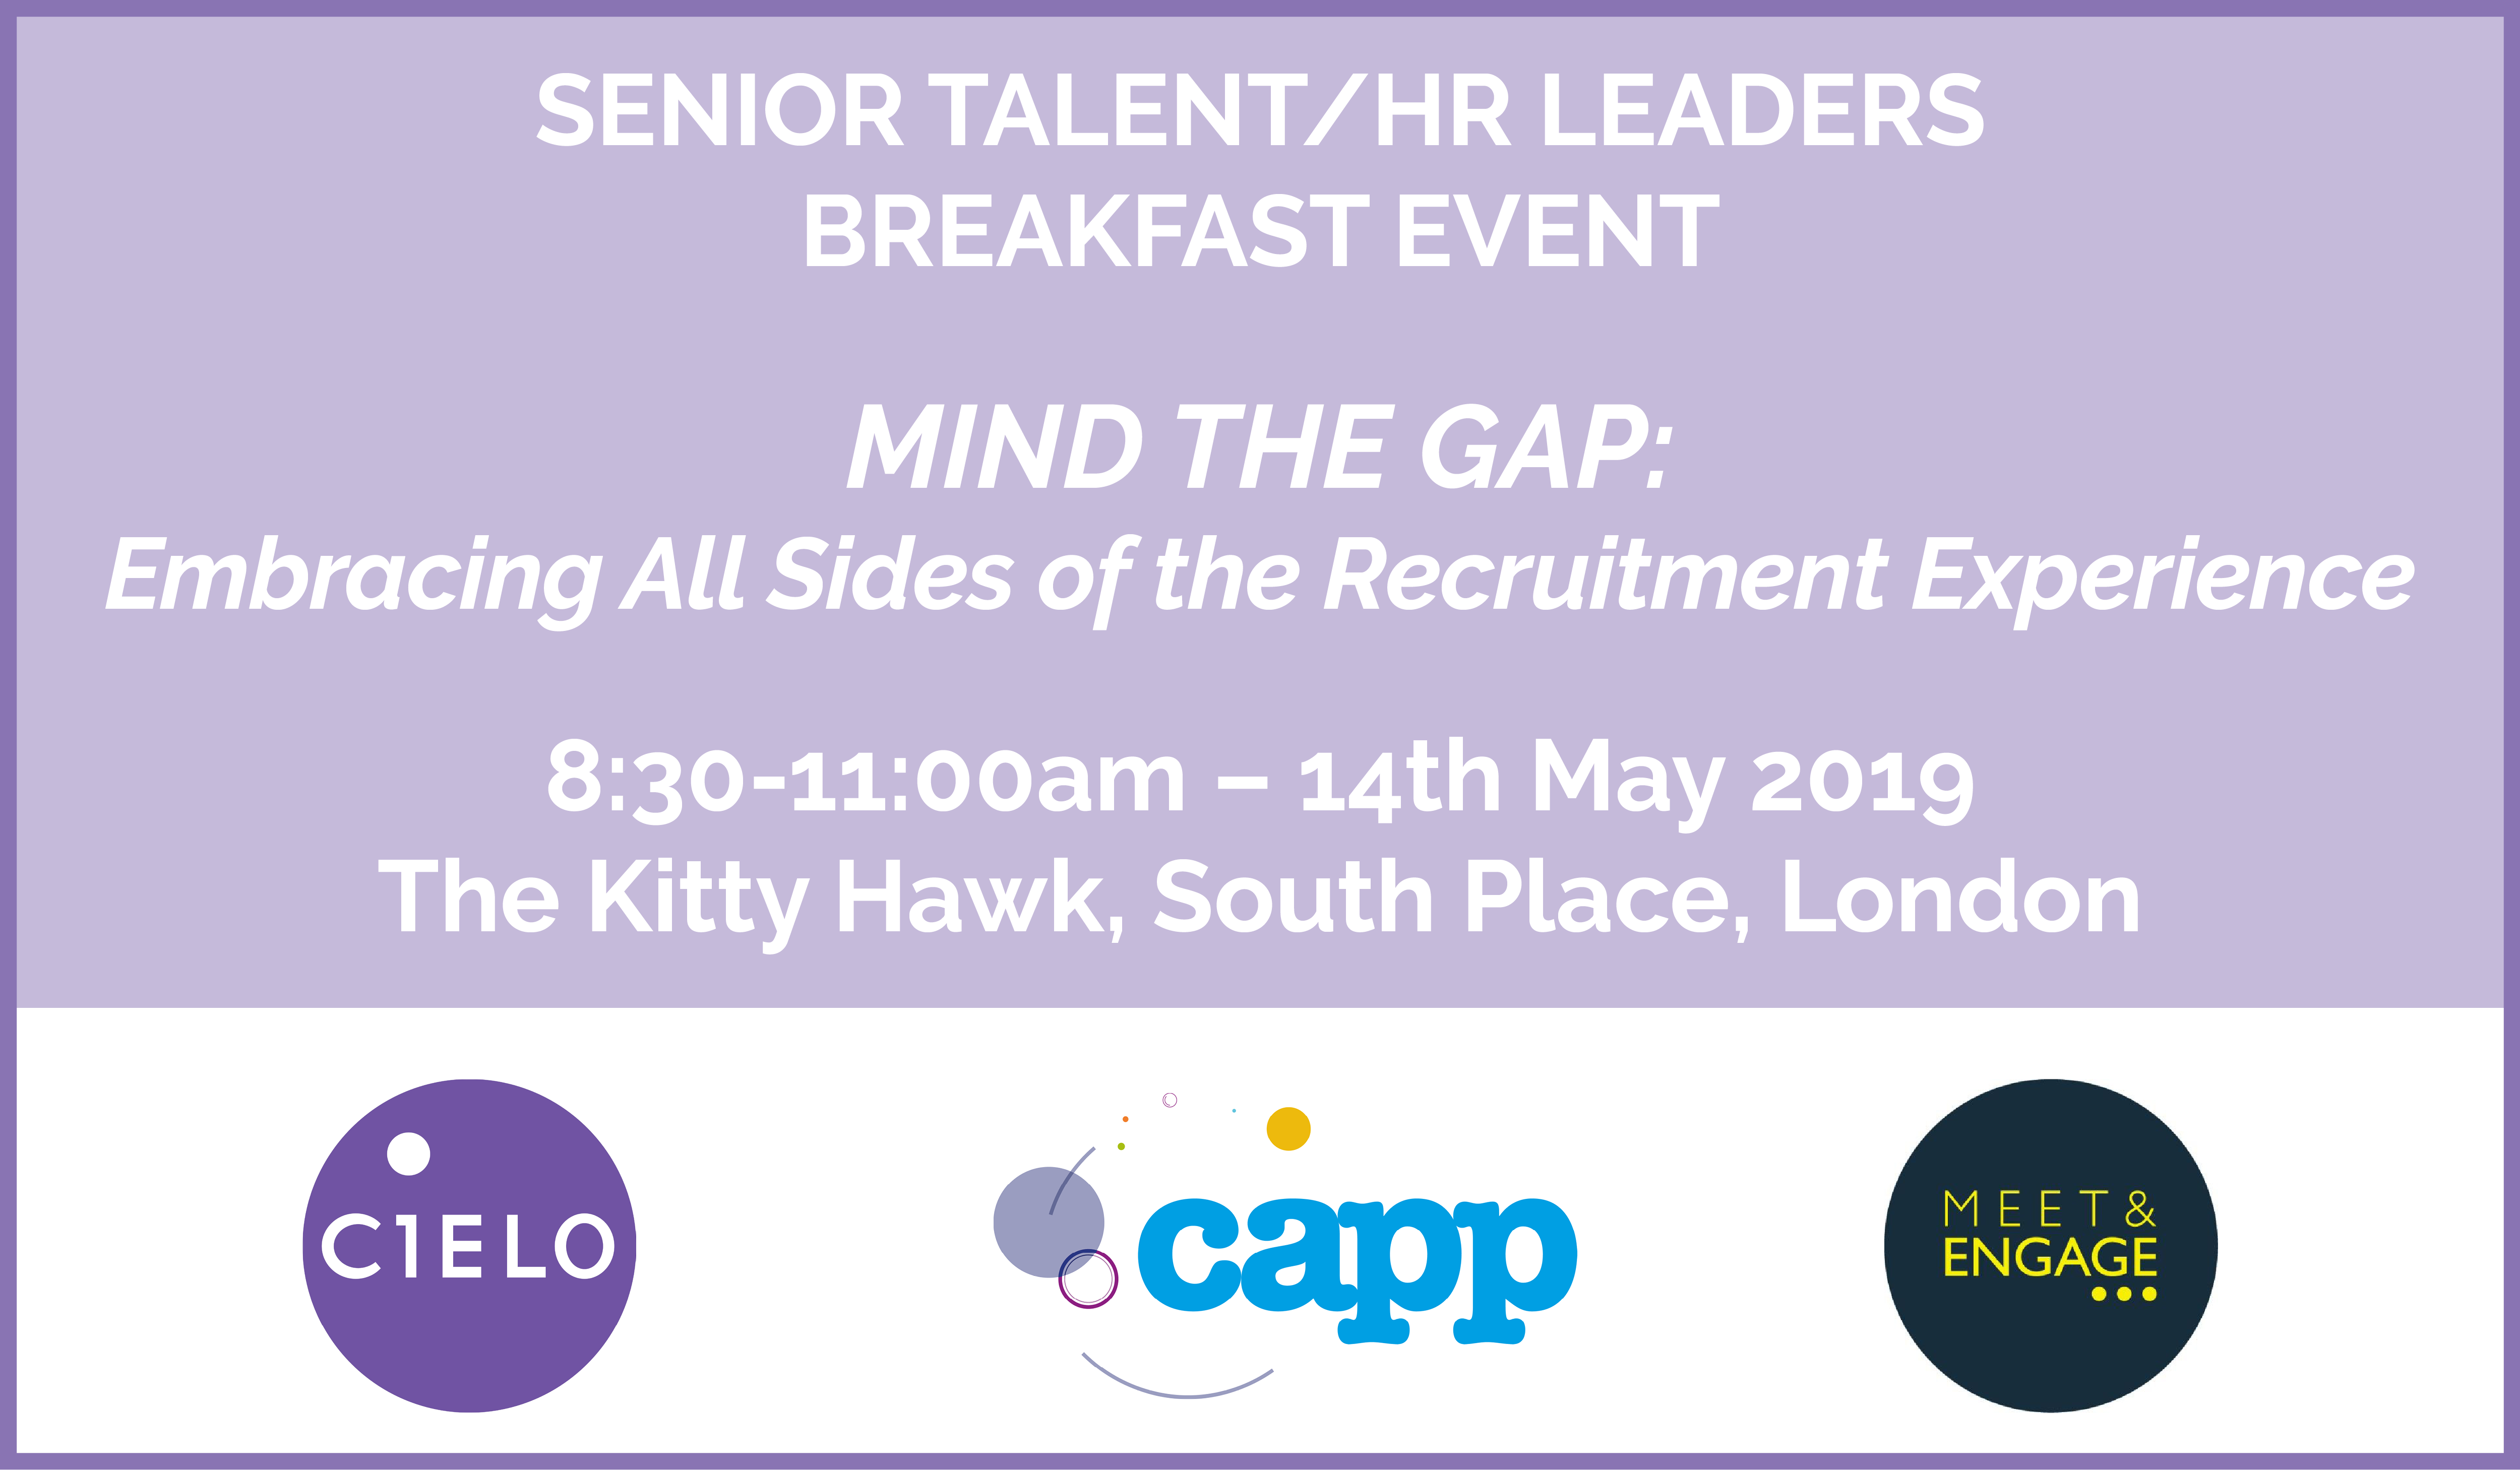 Mind the Gap - Embracing Both Sides of the Recruitment Experience